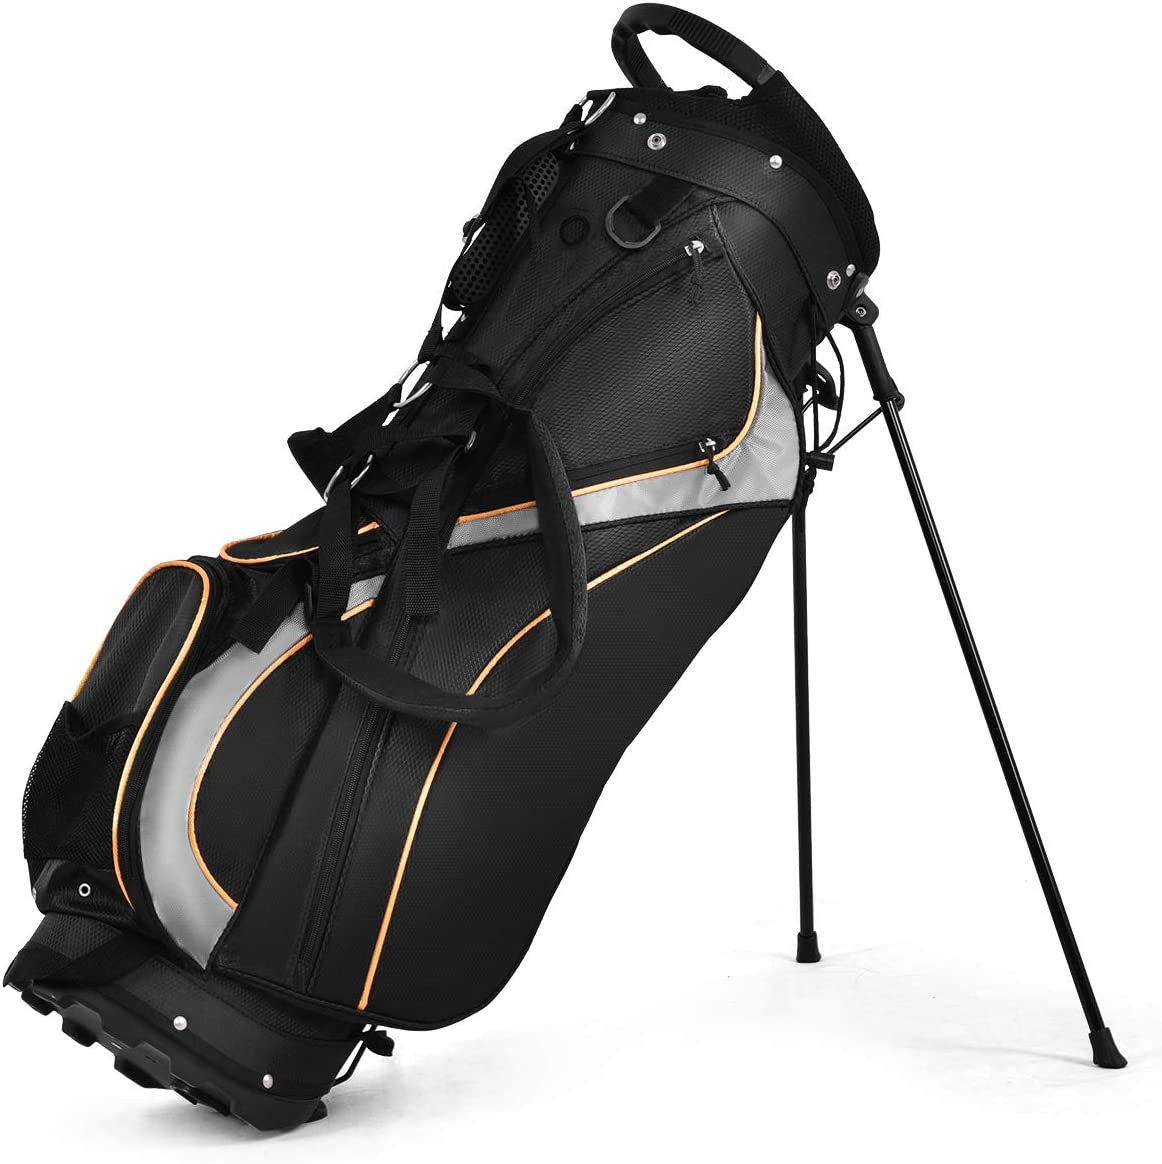 Tangkula Golf Bag 7 Way Divider Light Weight Portable Golf Cart Bag Waterproof Wear-Resistant Durable Fabric Easy Carry Space Saving Womens Mens Golf Stand Bag, Black : Sports & Outdoors